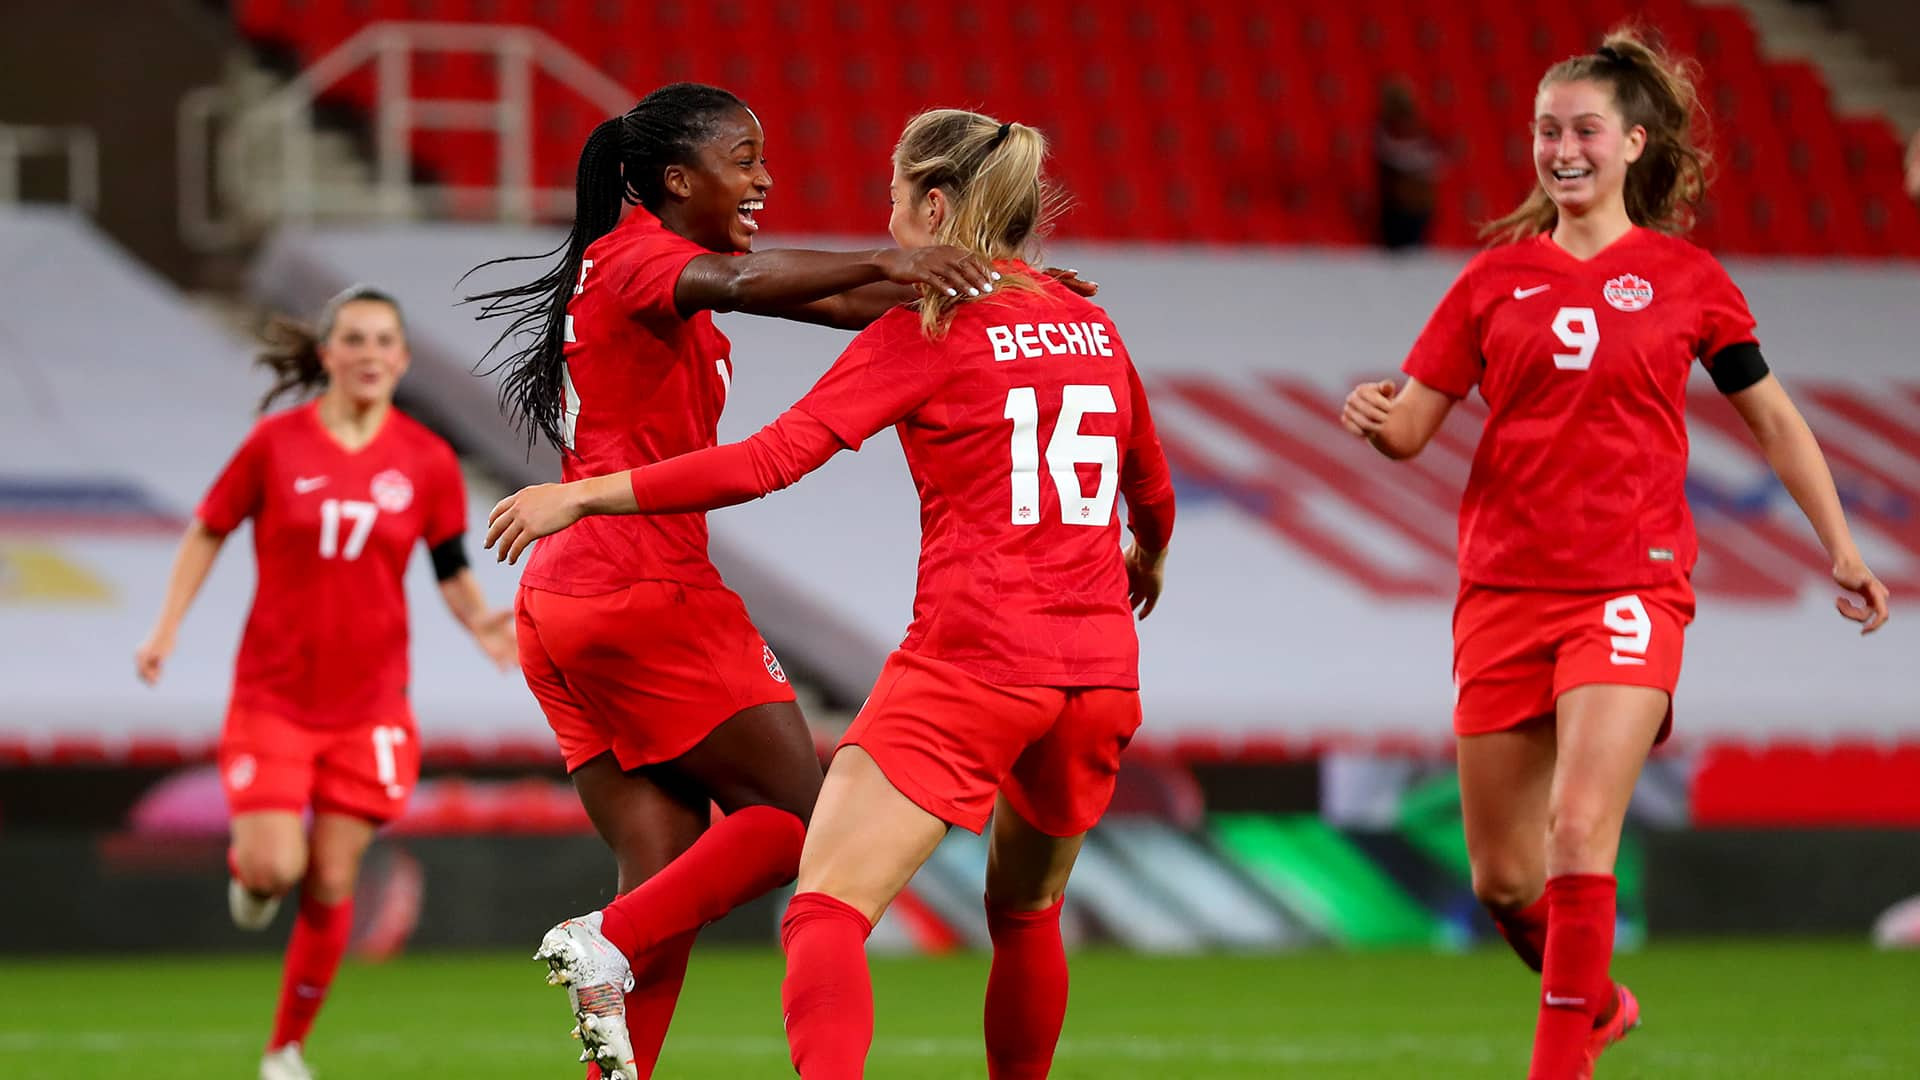 All the squads as they are announced for the women's soccer tournament at. Canadian Women S Soccer Team Roster Revealed For Tokyo Games Cbc Sports